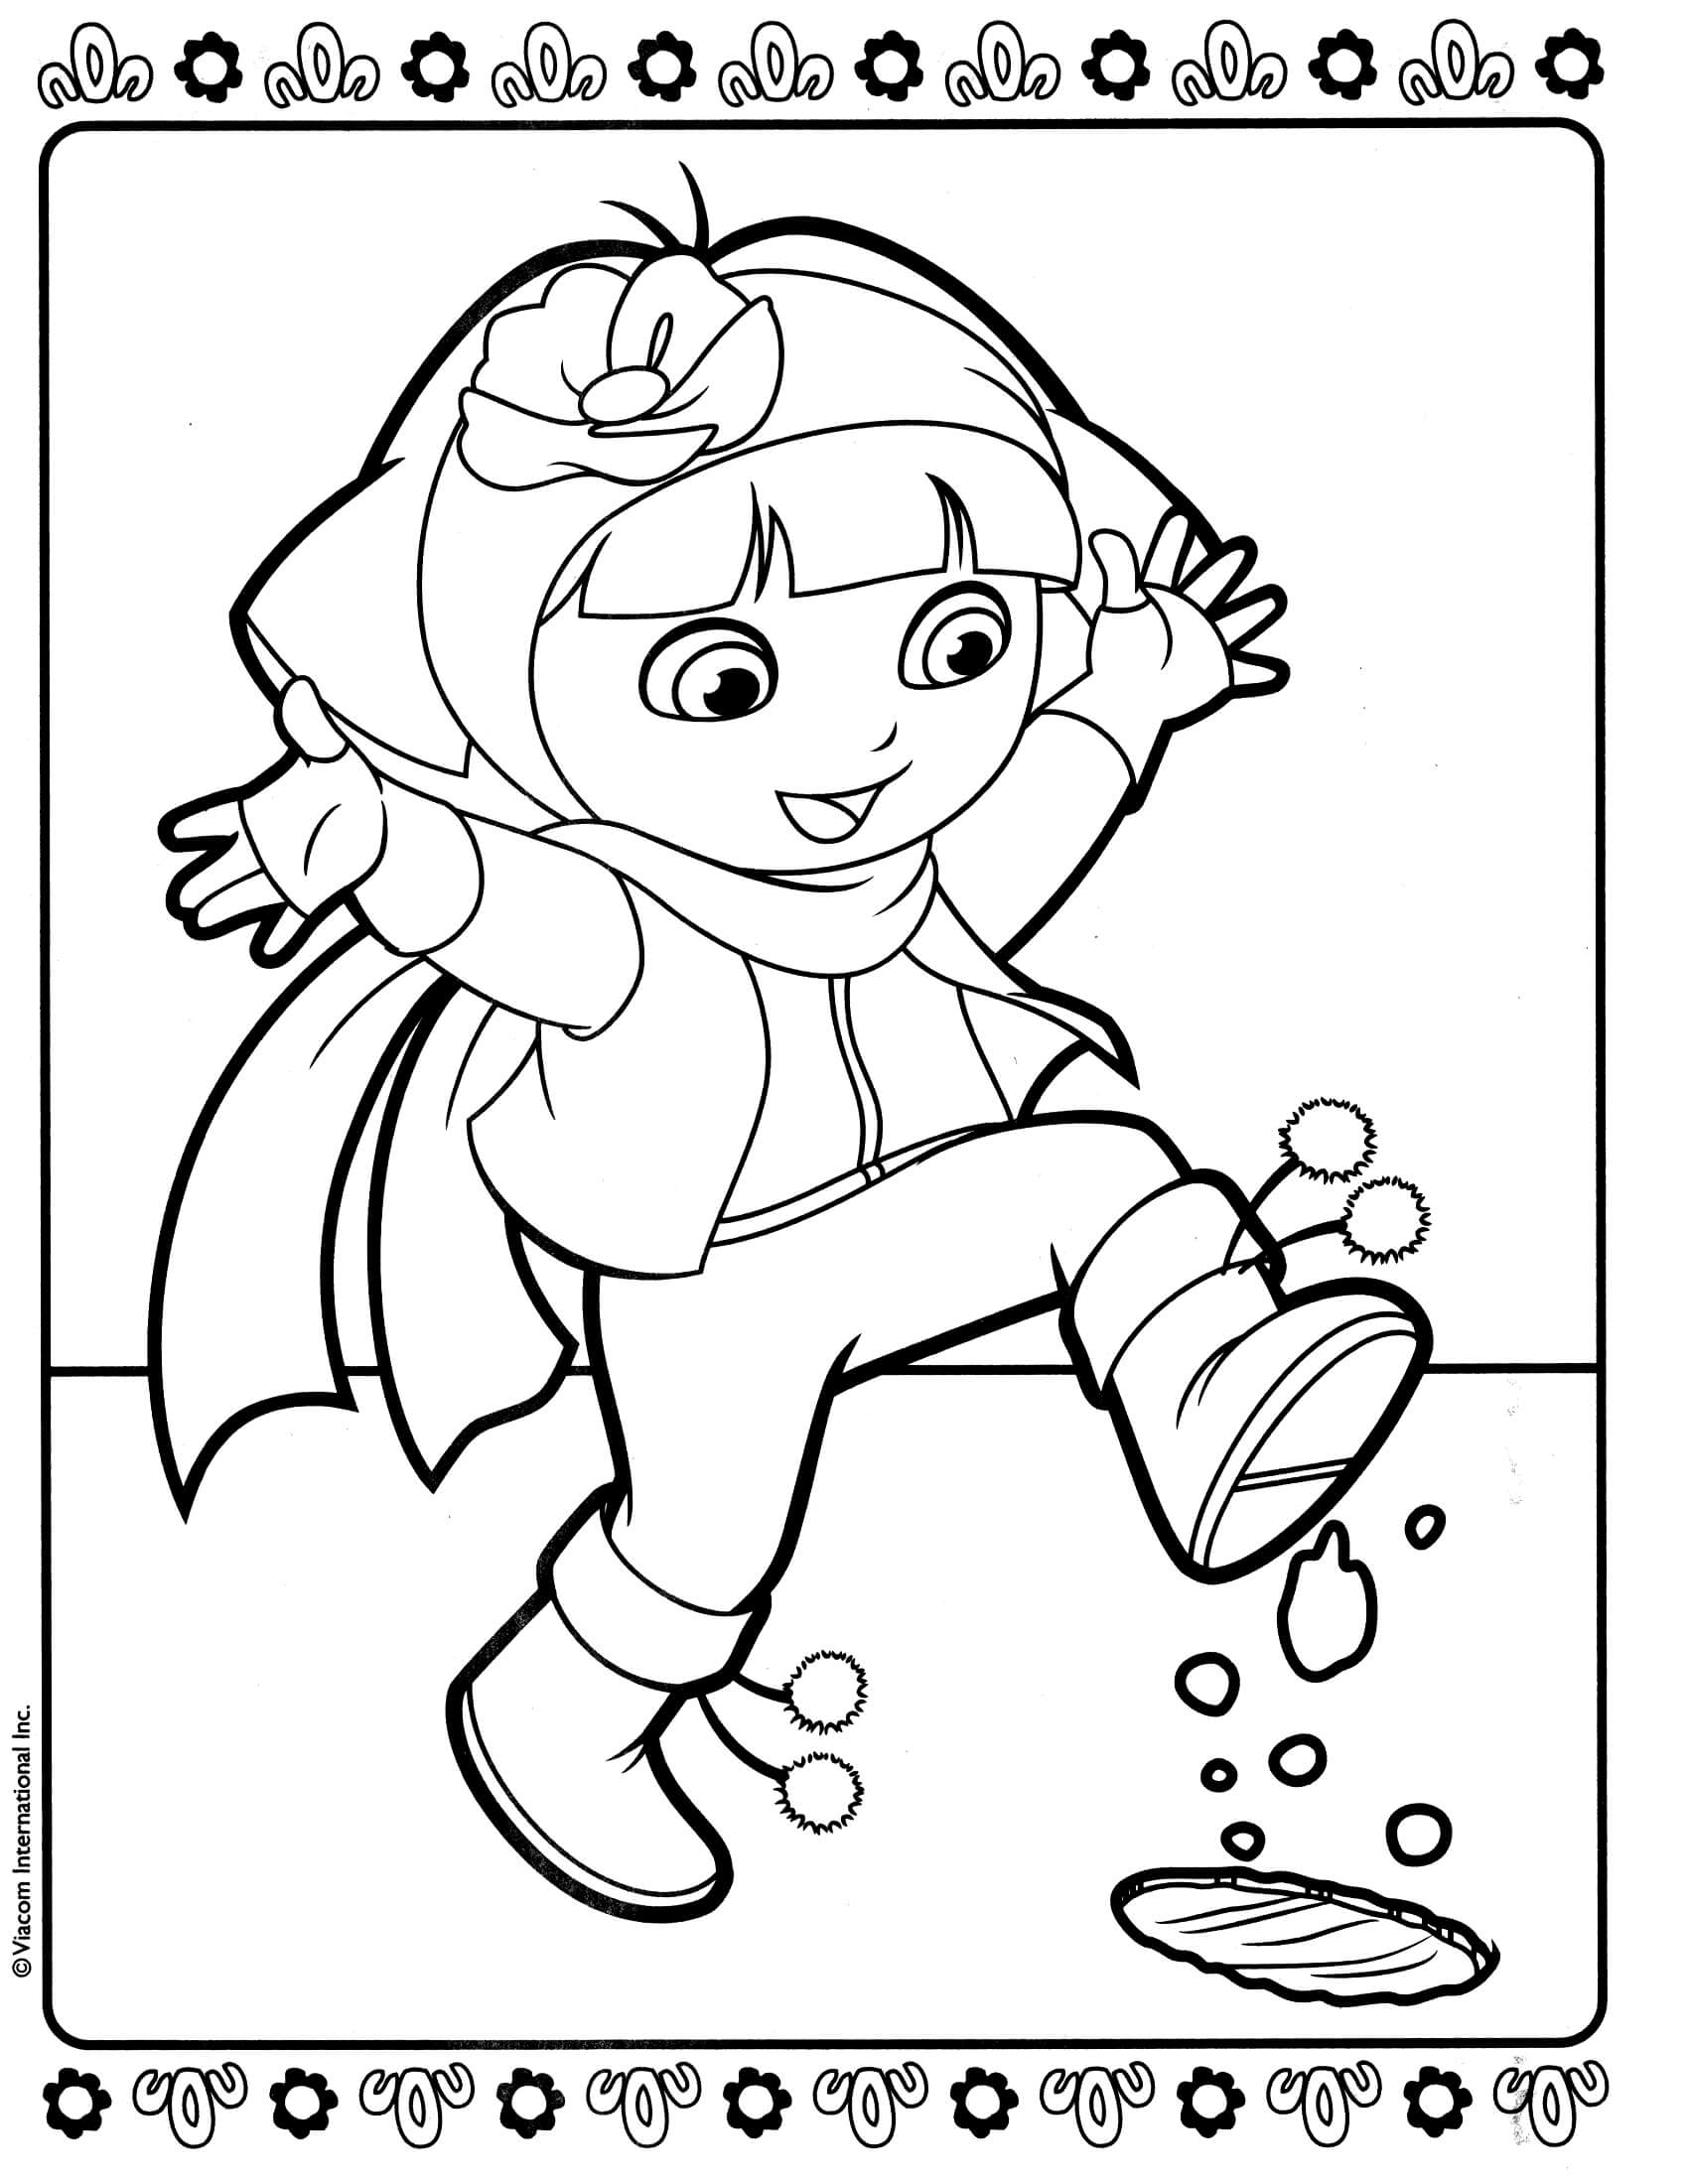 dora colouring pages printable print download dora coloring pages to learn new things dora printable pages colouring